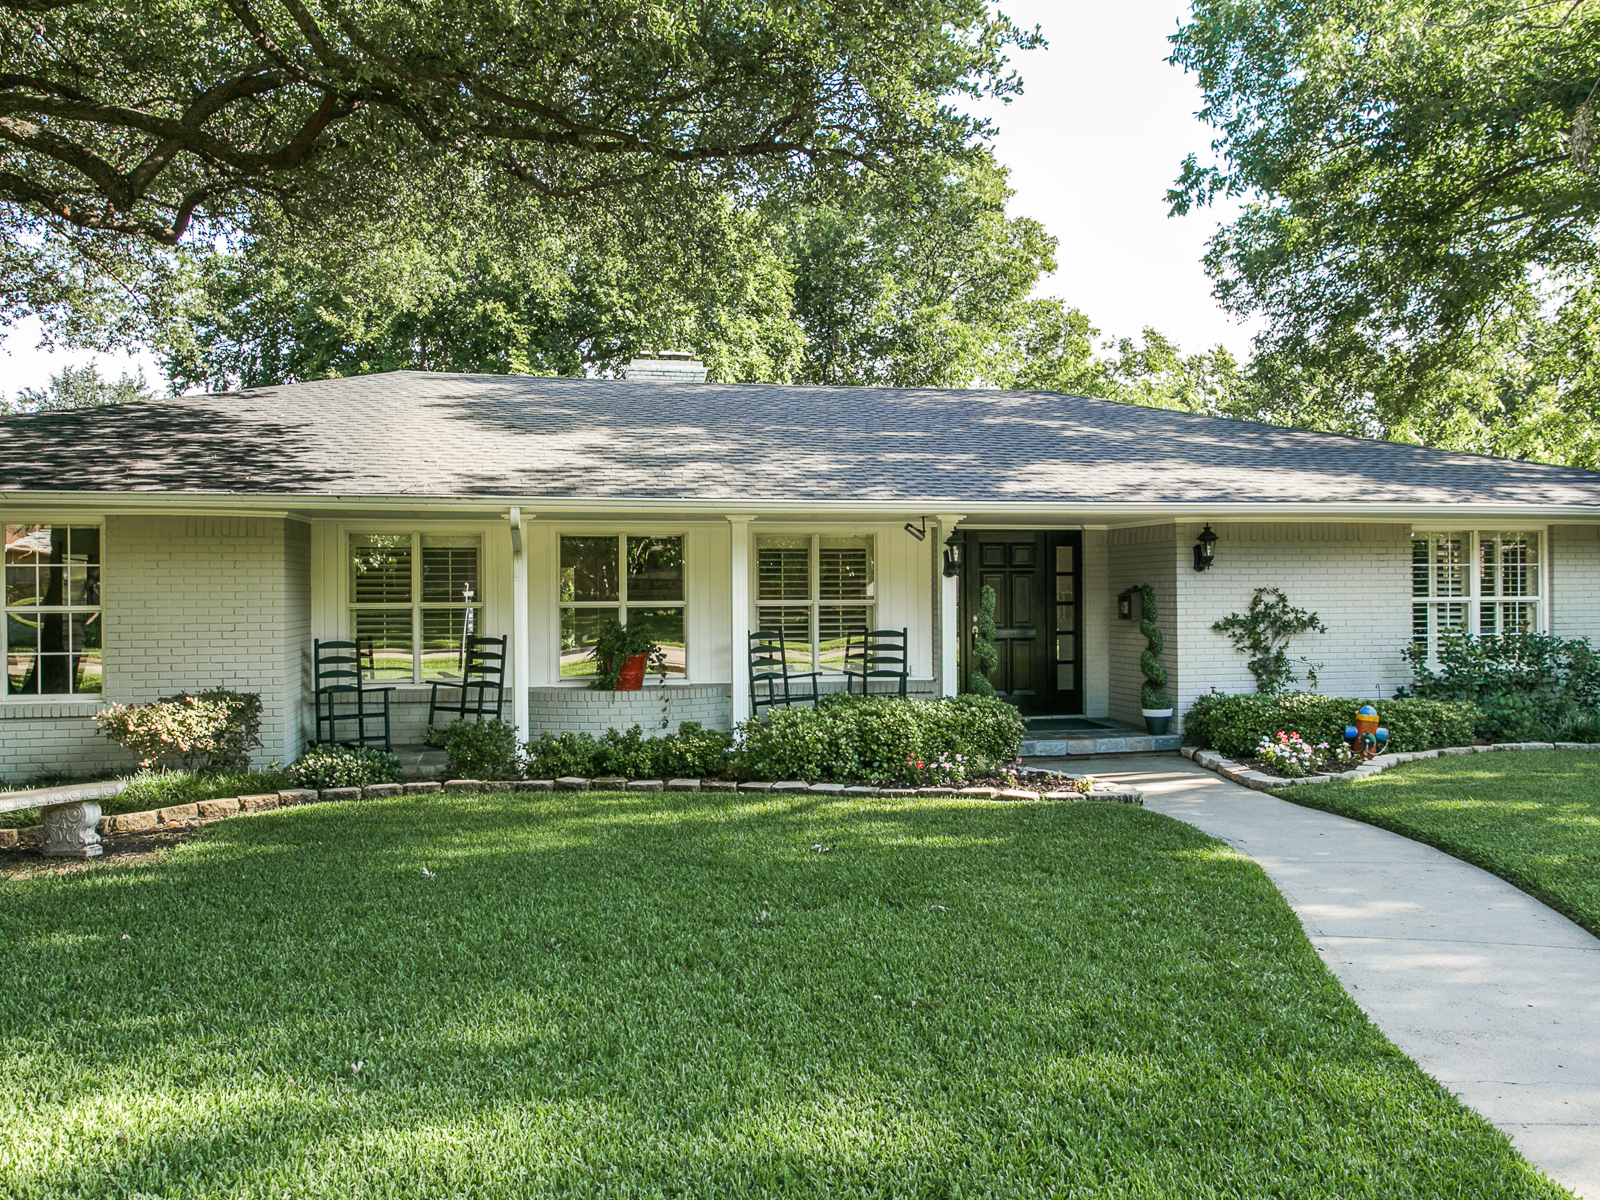 Single Family Home for Sale at Fabulous Open Ranch in Sought After Jan Mar Area 7031 Mason Dells Drive Dallas, Texas 75230 United States